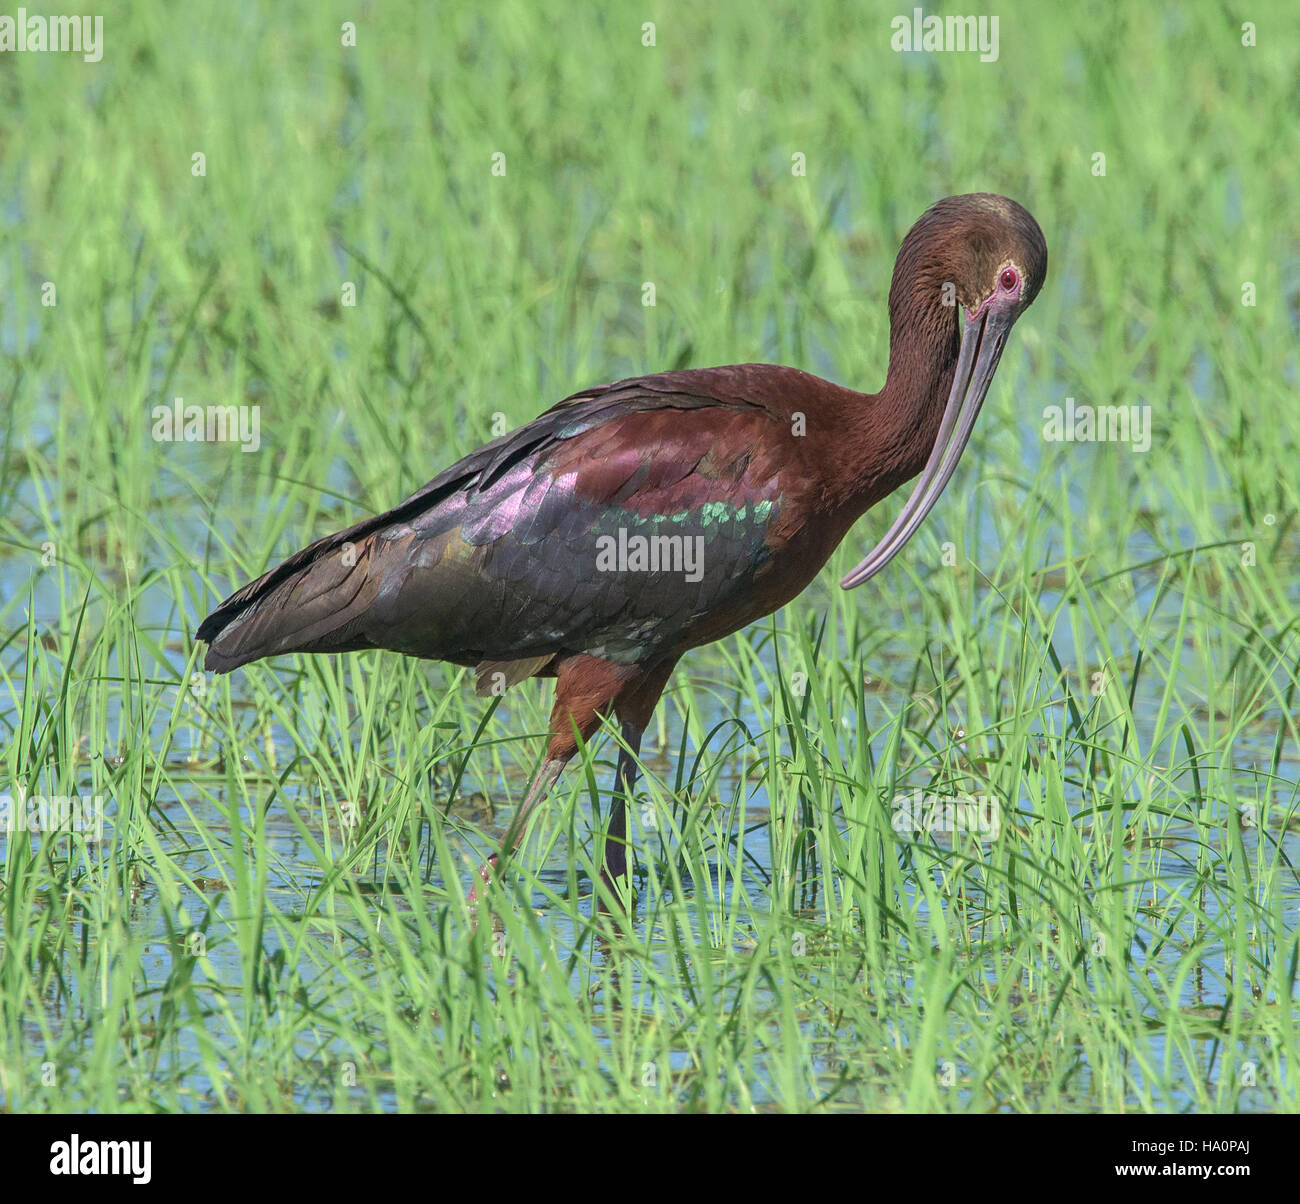 White-faced Ibis in Rice Paddy - Stock Image